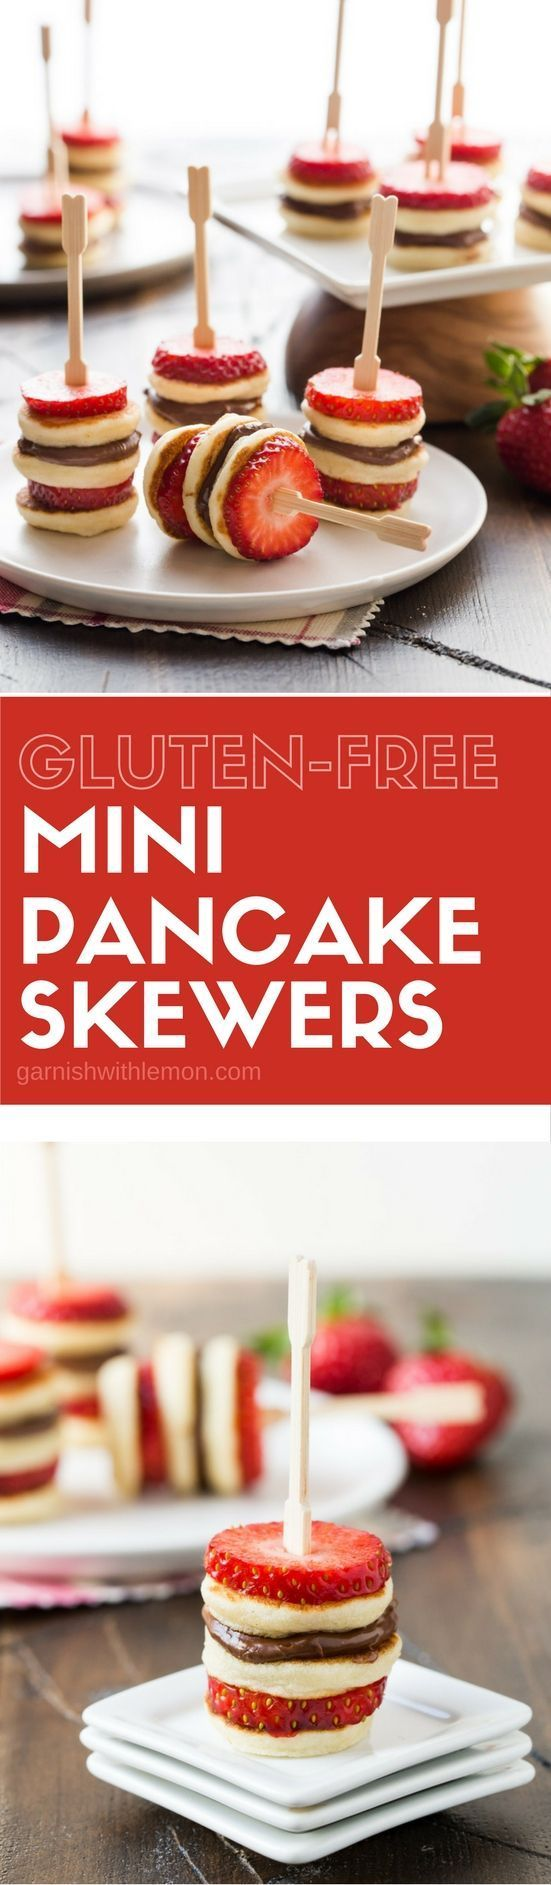 Having guests for brunch? Add these Gluten-Free Mini Pancake Skewers to the menu! Easy to make ahead of time, too. (Vegan Gluten Free)